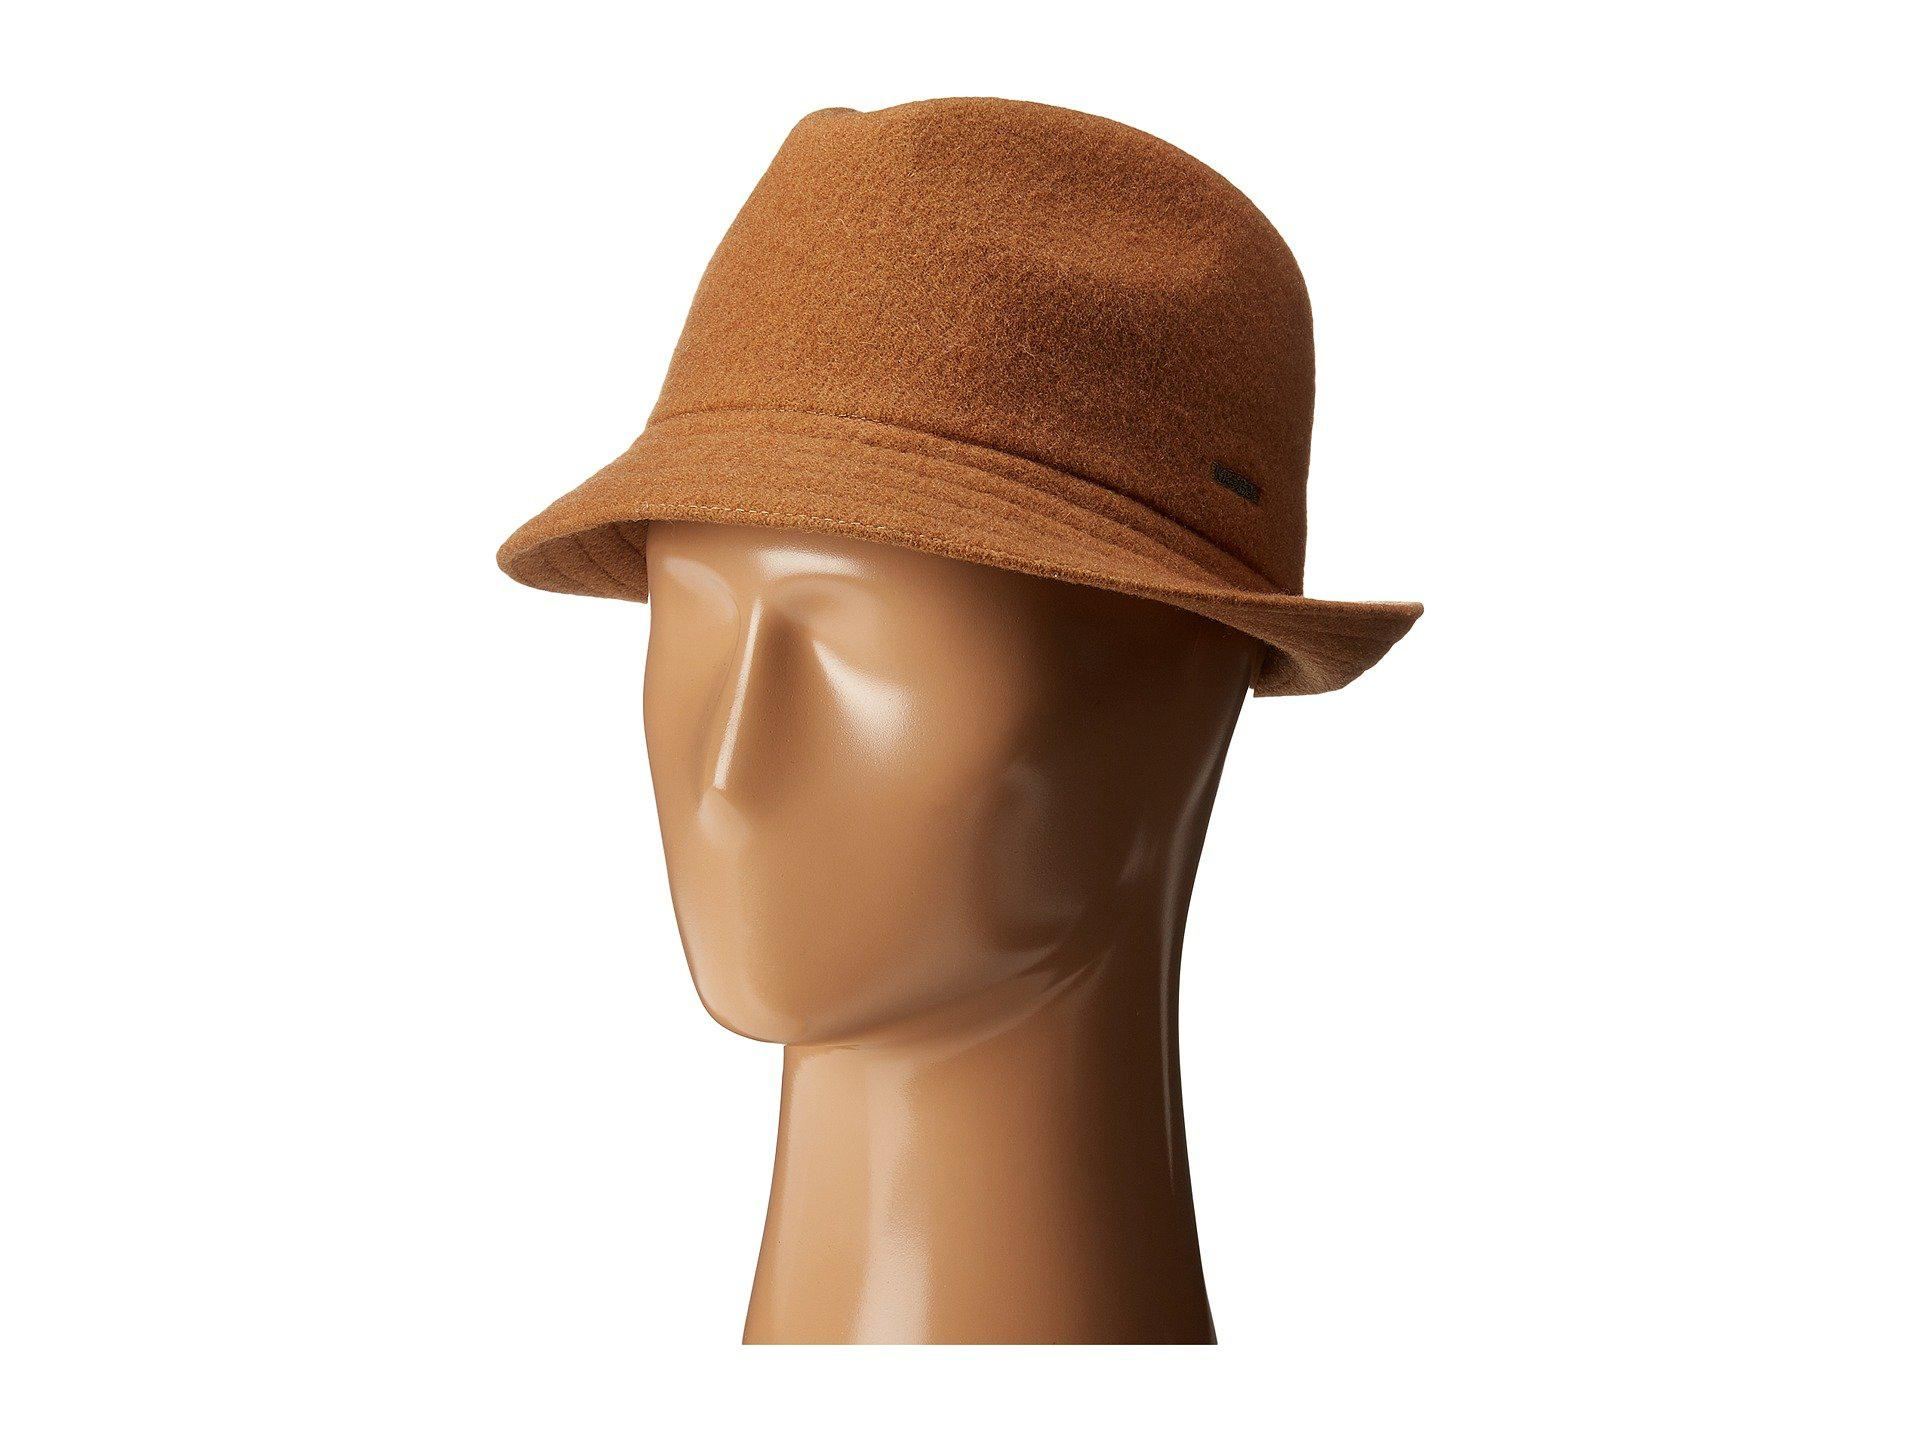 Lyst - Kangol Wool Arnold in Brown for Men 4f16e9bbcaee